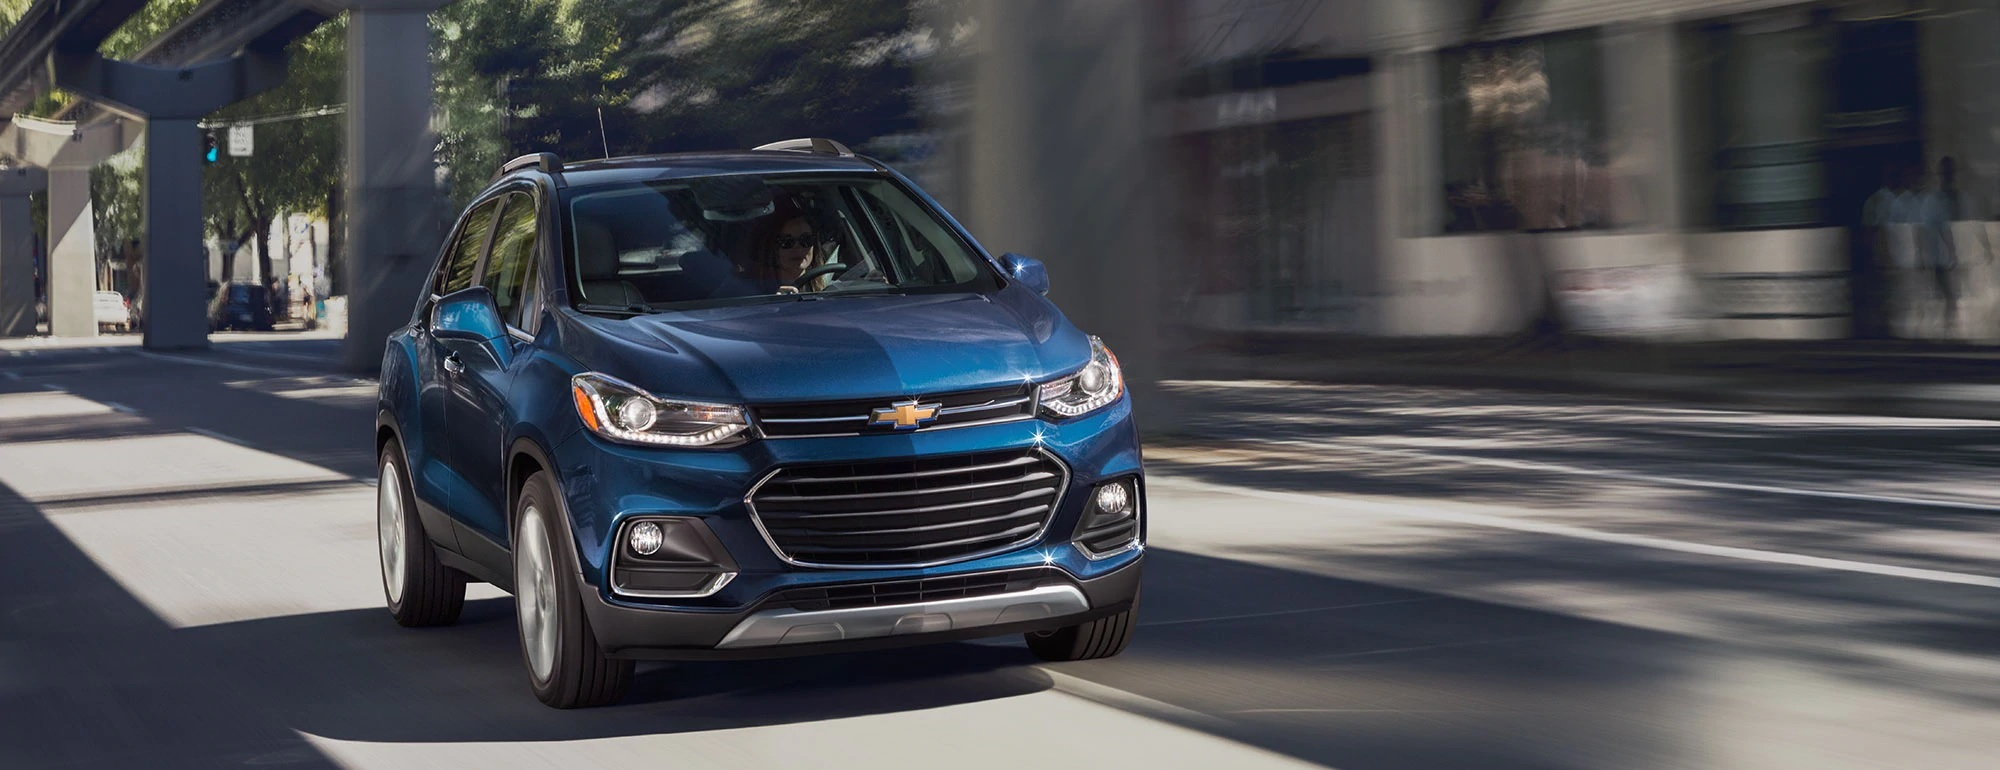 2020 Chevrolet Trax for Sale near Fort Gratiot, MI